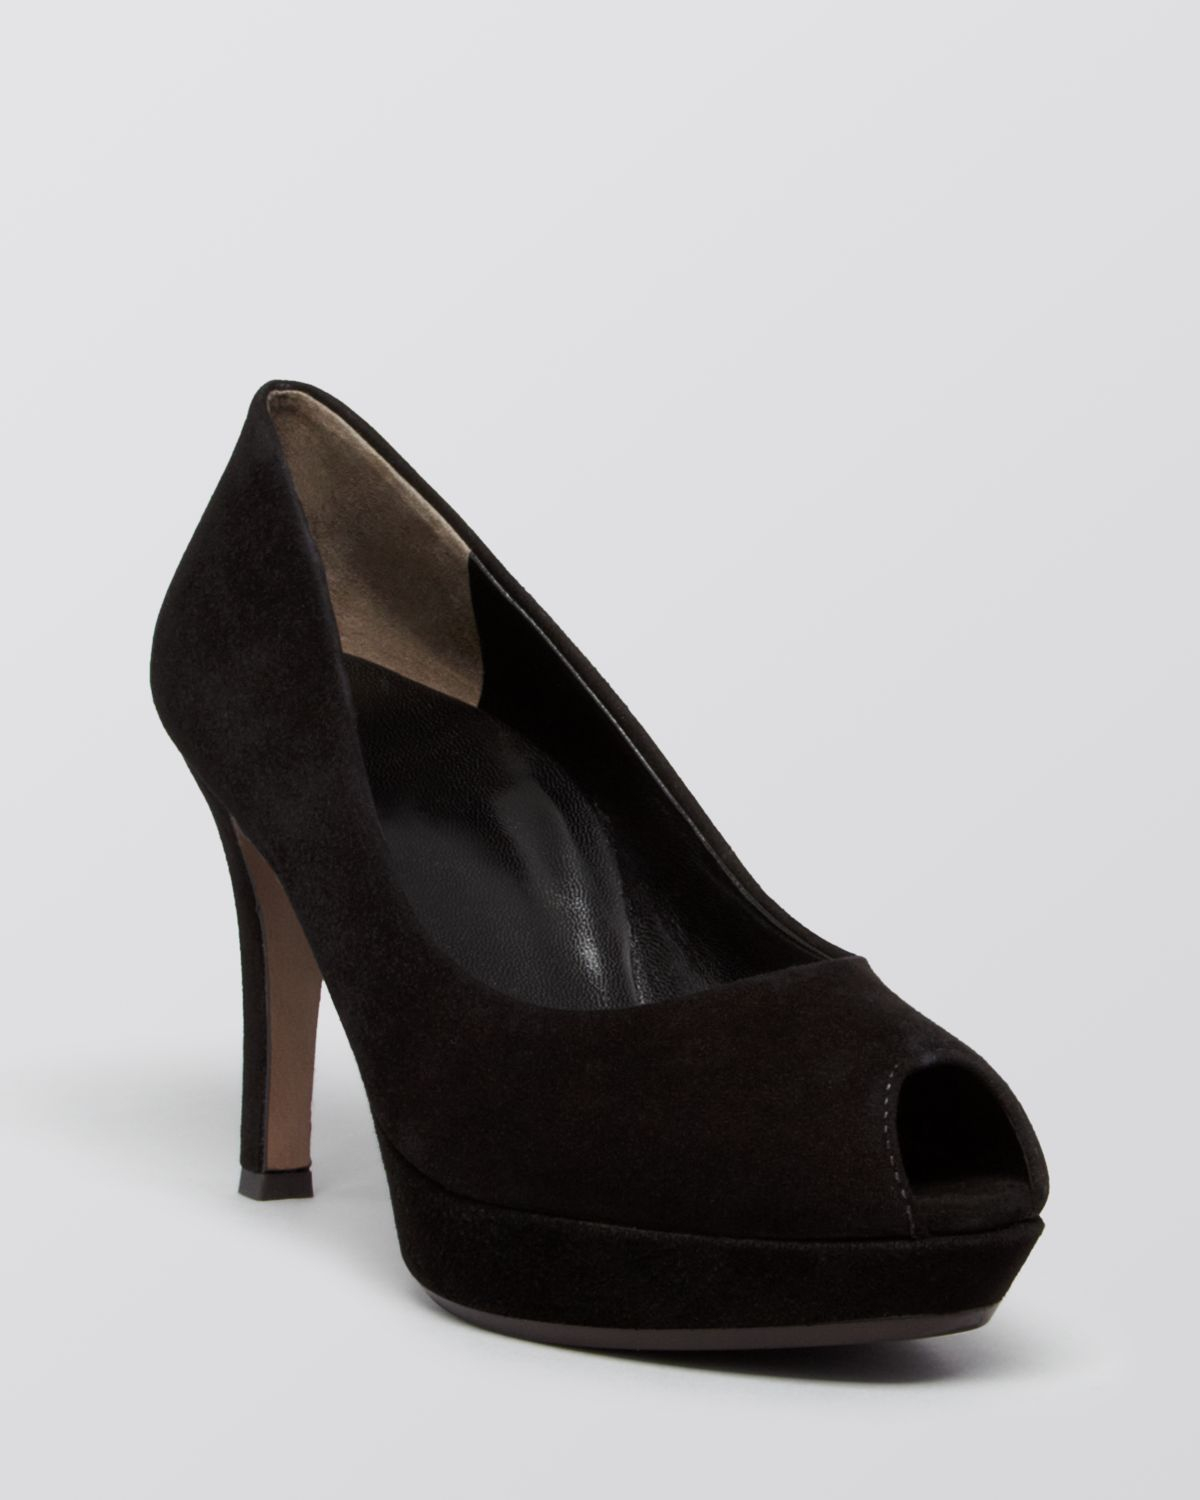 paul green peep toe platform pumps playa high heel in black lyst. Black Bedroom Furniture Sets. Home Design Ideas